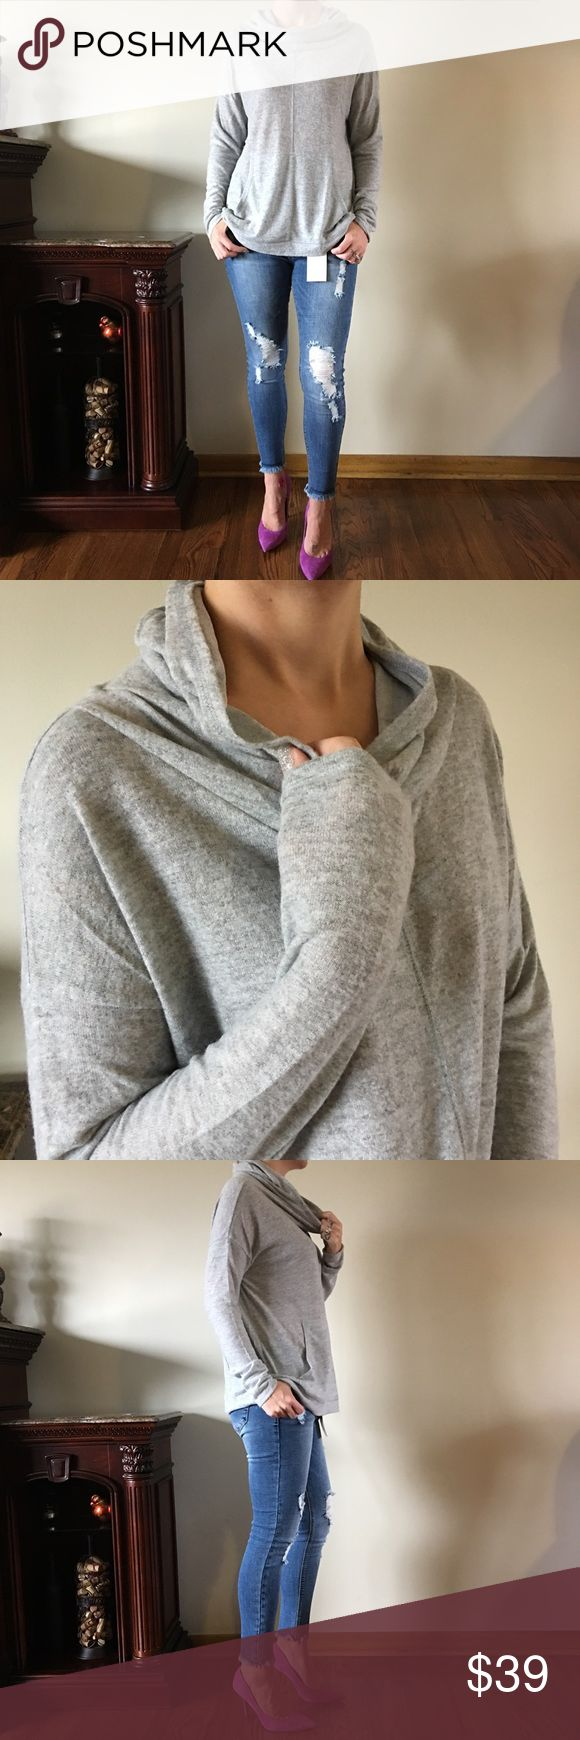 """Cowl Neck Hoodie This cowl neck hoodie in heather gray, seriously makes you feel like you are wrapped in a cozy blanket..super soft and comfy without being bulky..kangaroo pocket in front..great for everyday & running errands!  💕I'm 5'7"""" modeling the Small 💕Rayon/Polyester 💕Pit to Pit: S-22"""" M-23"""" L-24"""" 💕Length Shoulder to Hem: S&M:~25""""  L:~26"""" Tops Sweatshirts & Hoodies"""